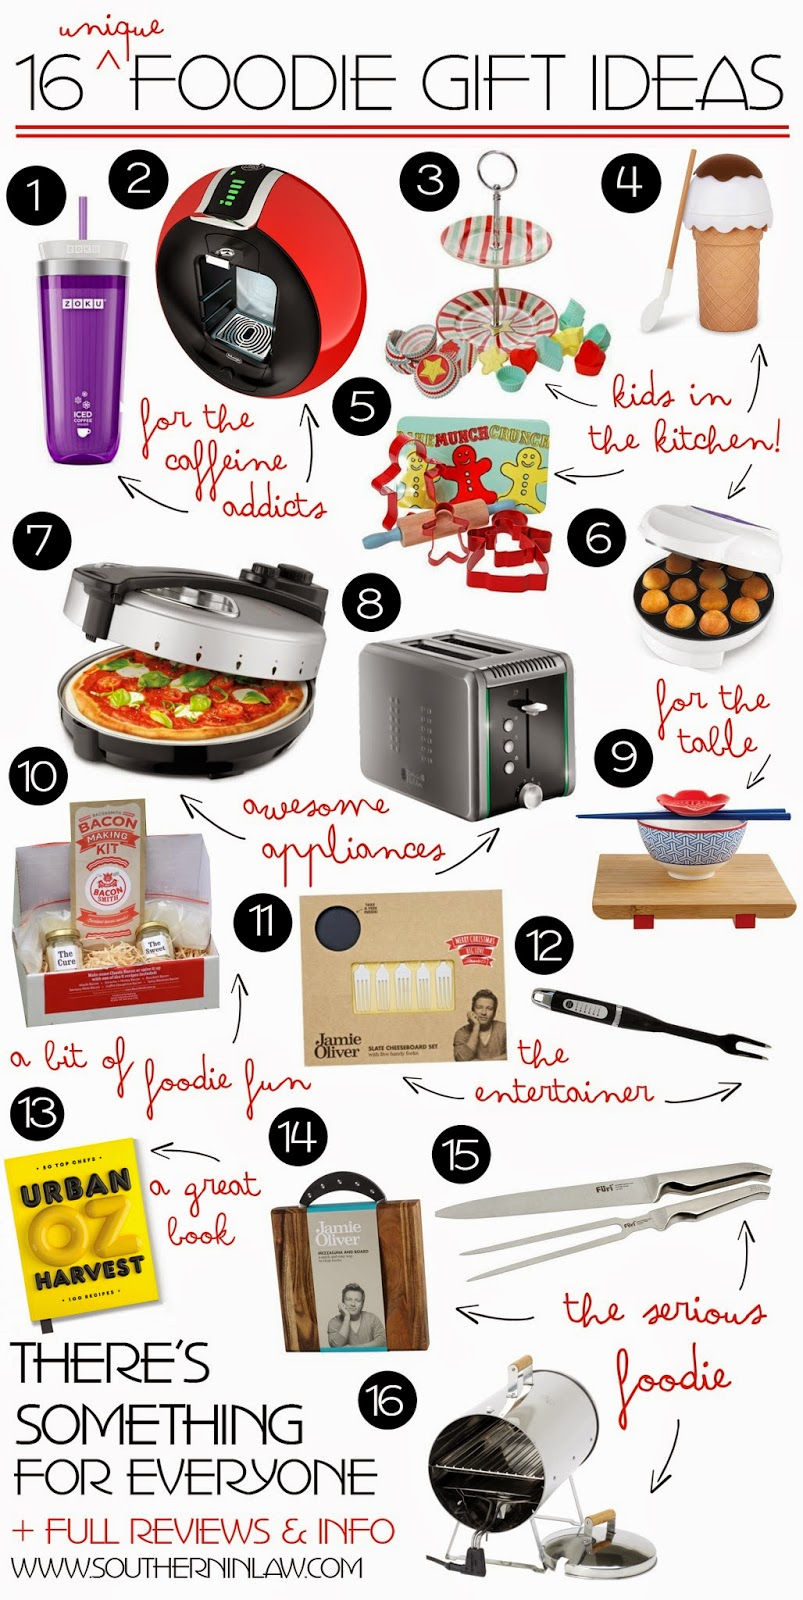 The Ultimate Foodie Gift Guide for 2014 - Unique Foodie Gift Ideas